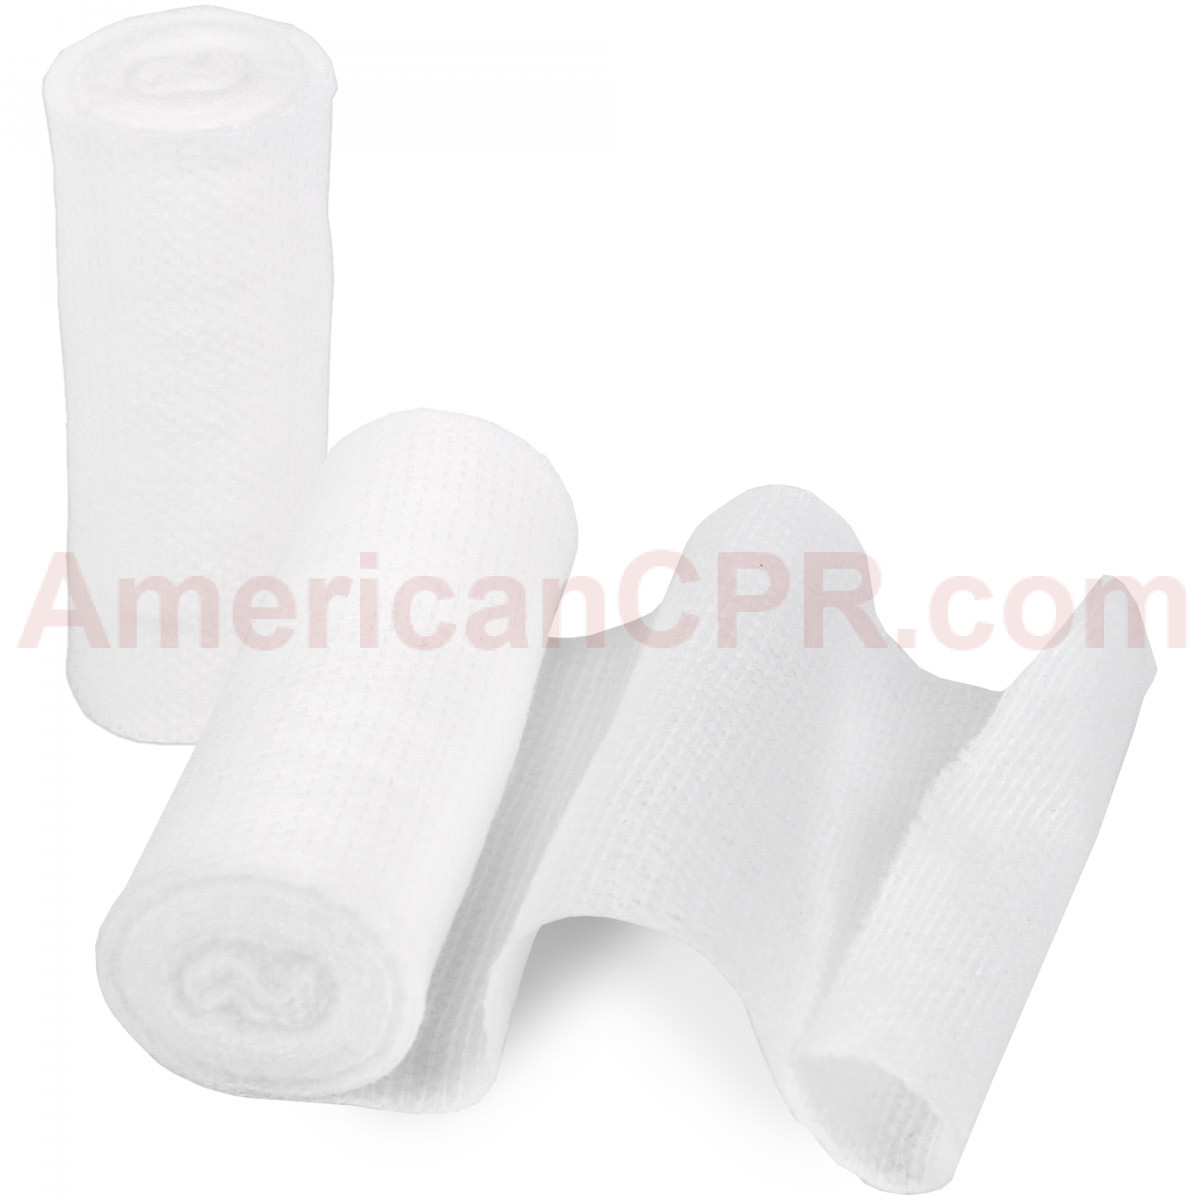 "Conforming Gauze Roll Bandage, Non-Sterile 3"" - 1 Each - First Aid Only"